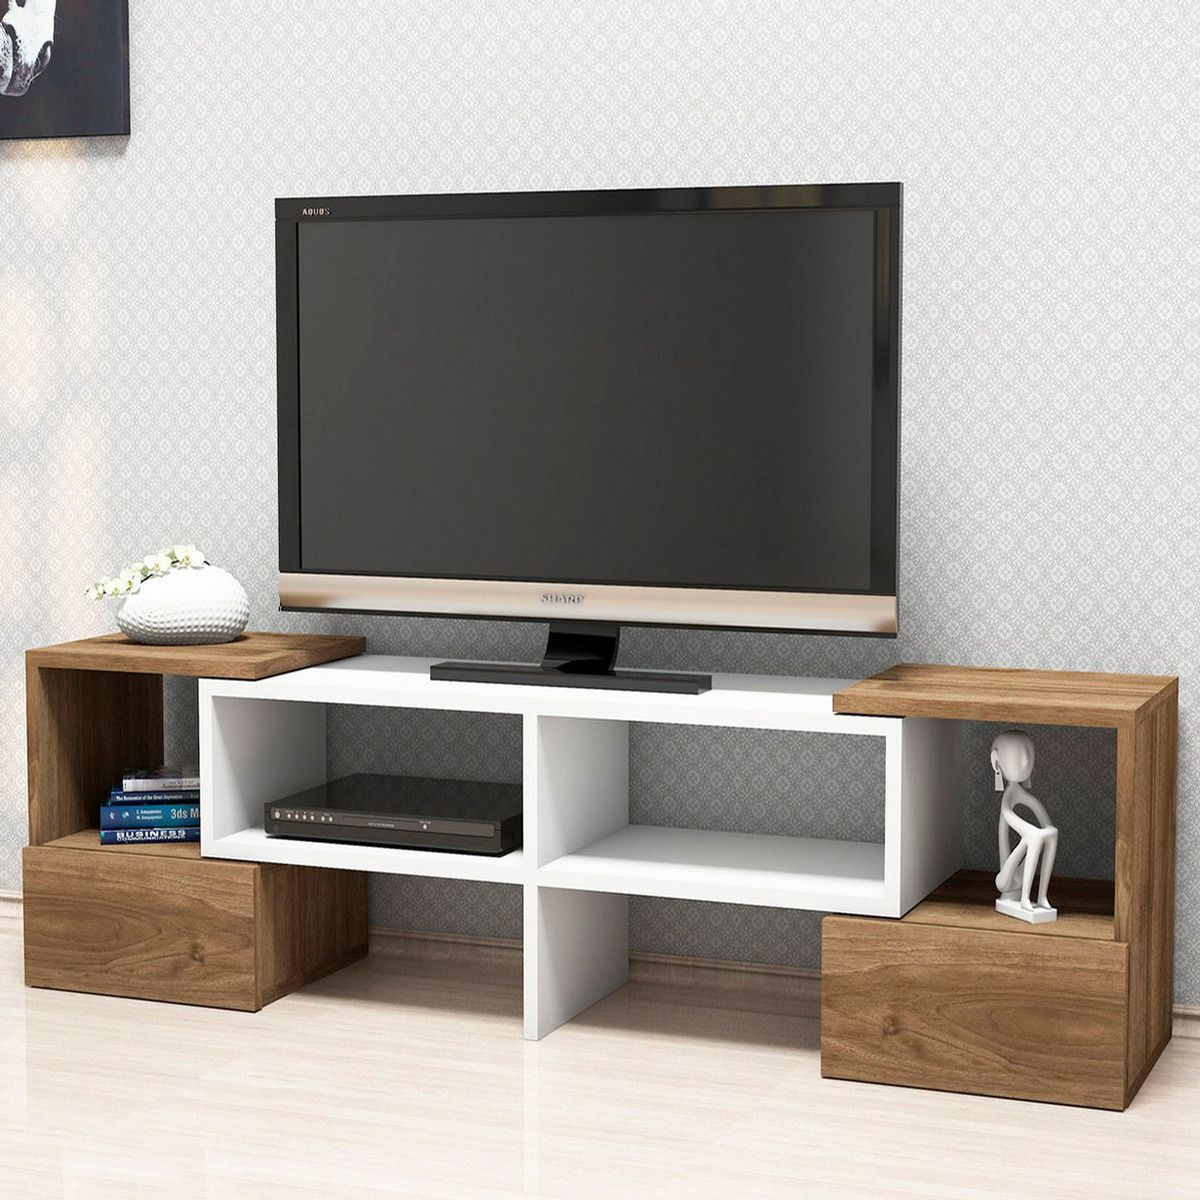 Meuble Tv Fold By Design Line Lovethesign Leandre Pinterest  # Meuble Tv Arena